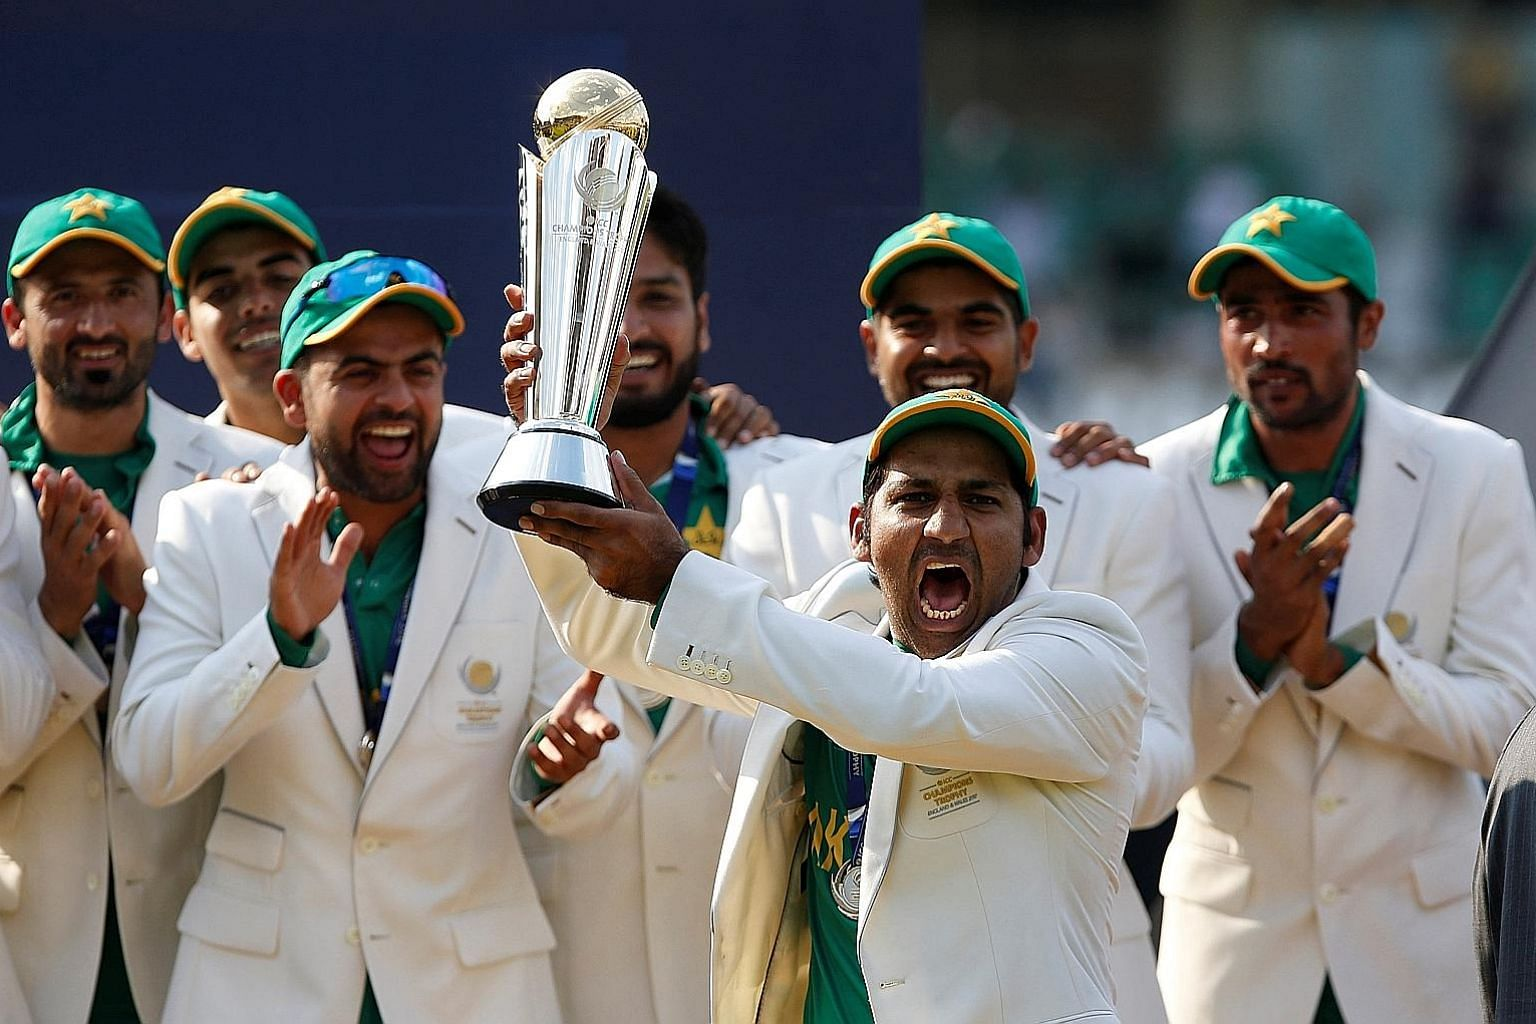 Pakistan players celebrating with the ICC Champions Trophy on Sunday after their comprehensive 180-run victory over India, who had trounced them in the first group game.